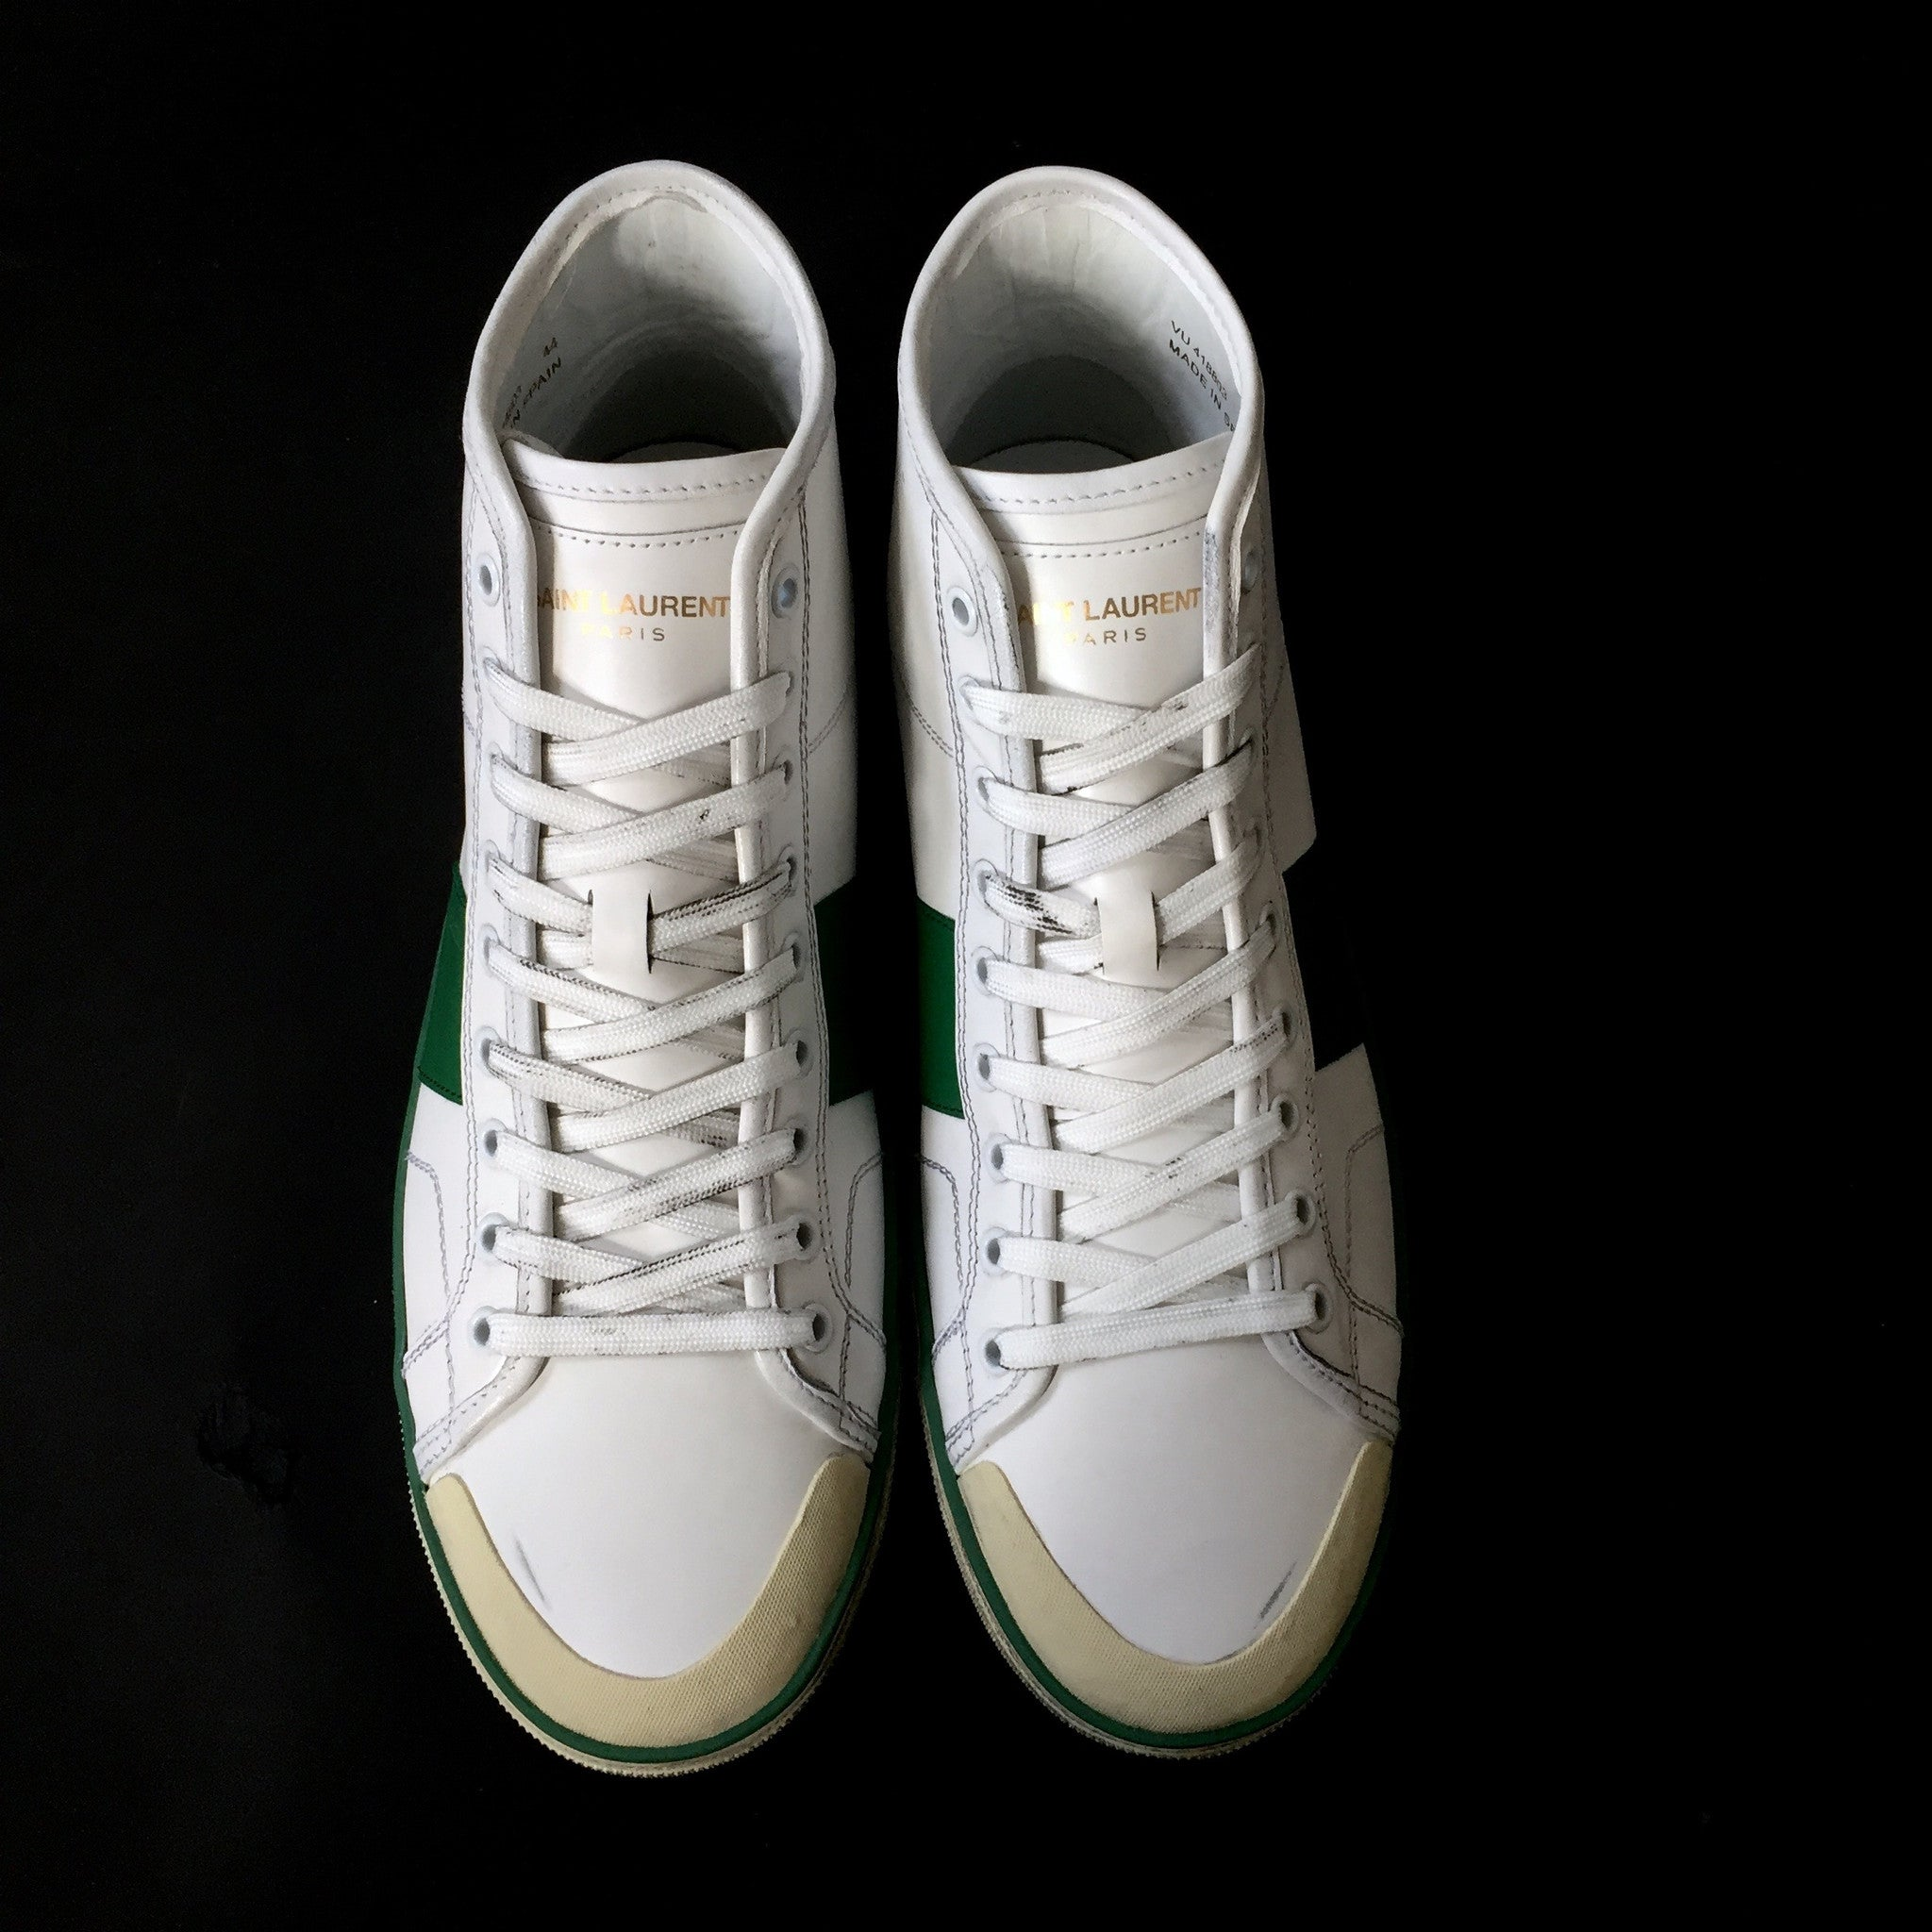 Saint Laurent Paris - SL / 37M Distressed Leather Sneakers